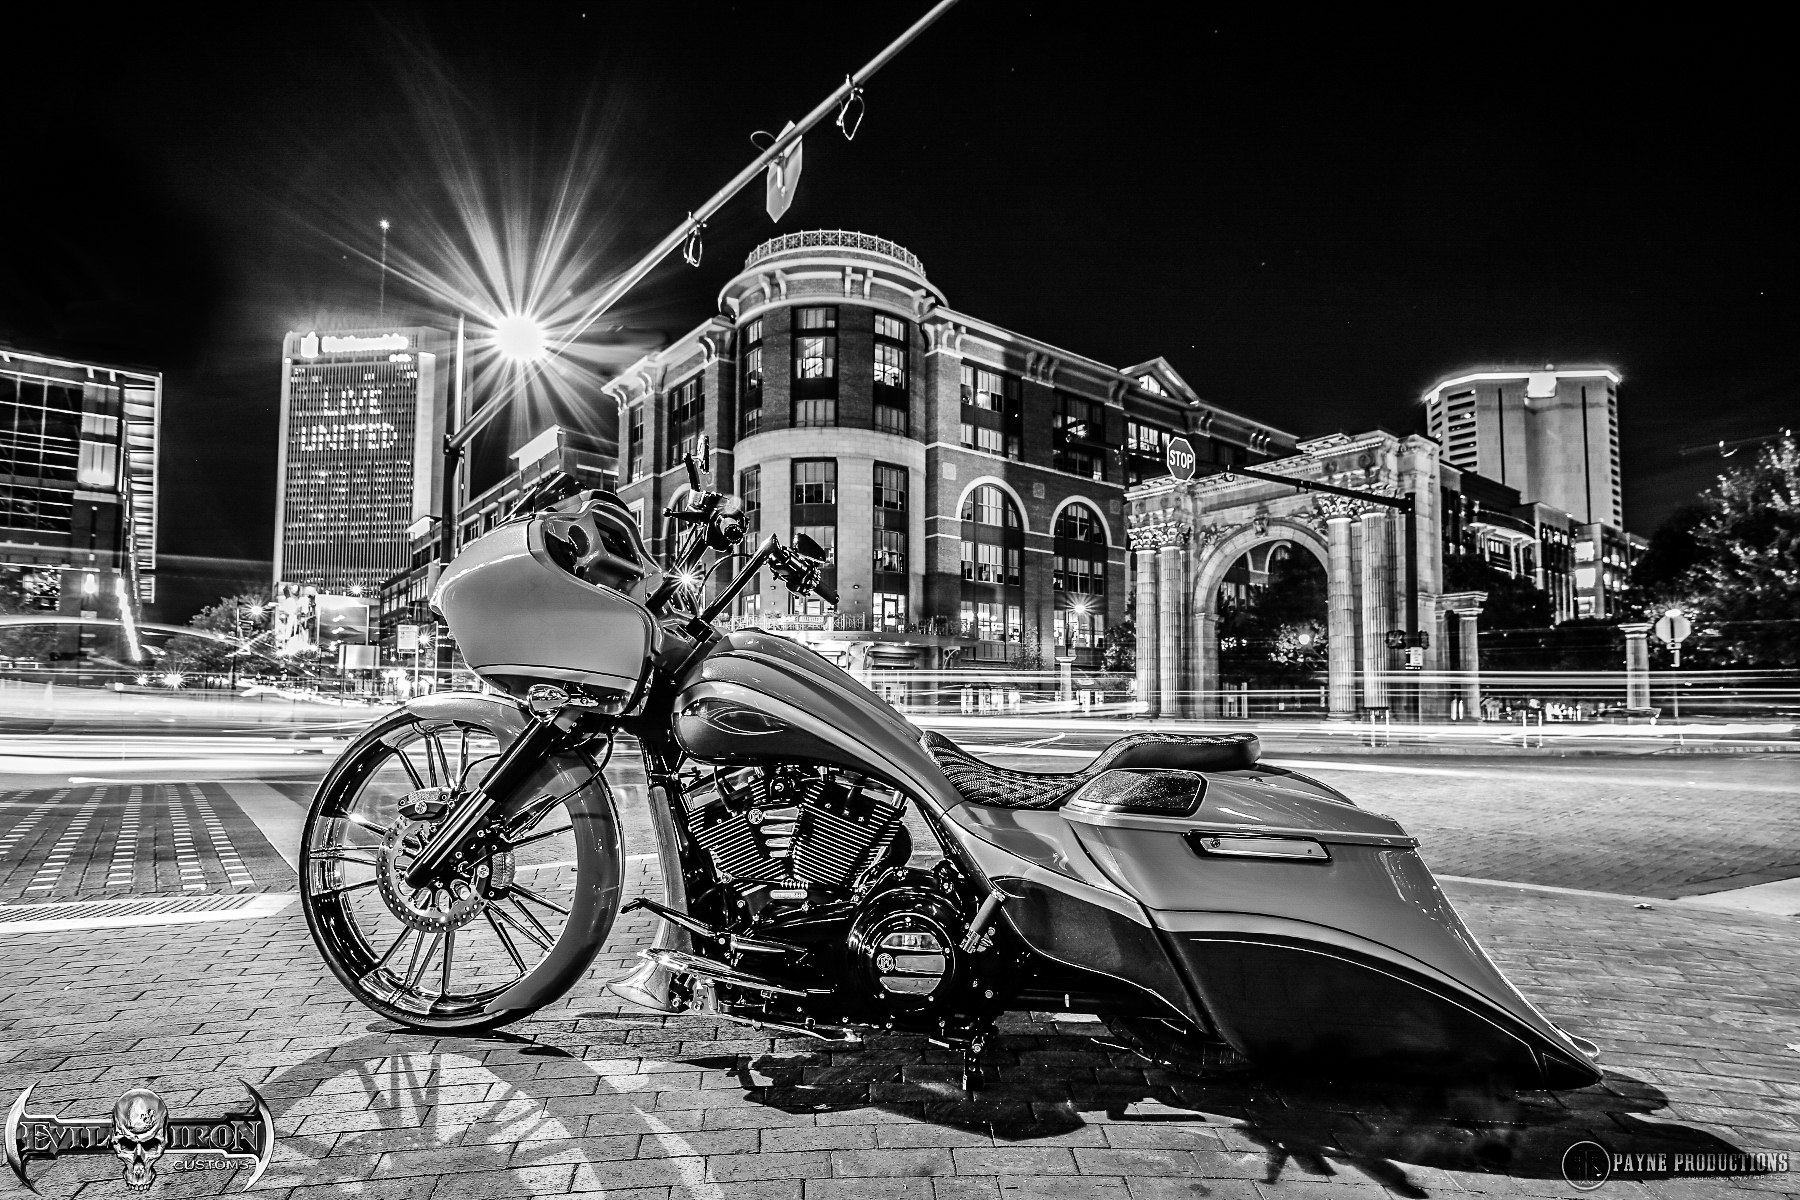 EVIL GOOSE: AWARD WINNING BAGGER BUILT BY EVIL IRON CUSTOMS.  PHOTO SHOT IN THE ARENA DISTRICT IN DOWNTOWN COLUMBUS, oh